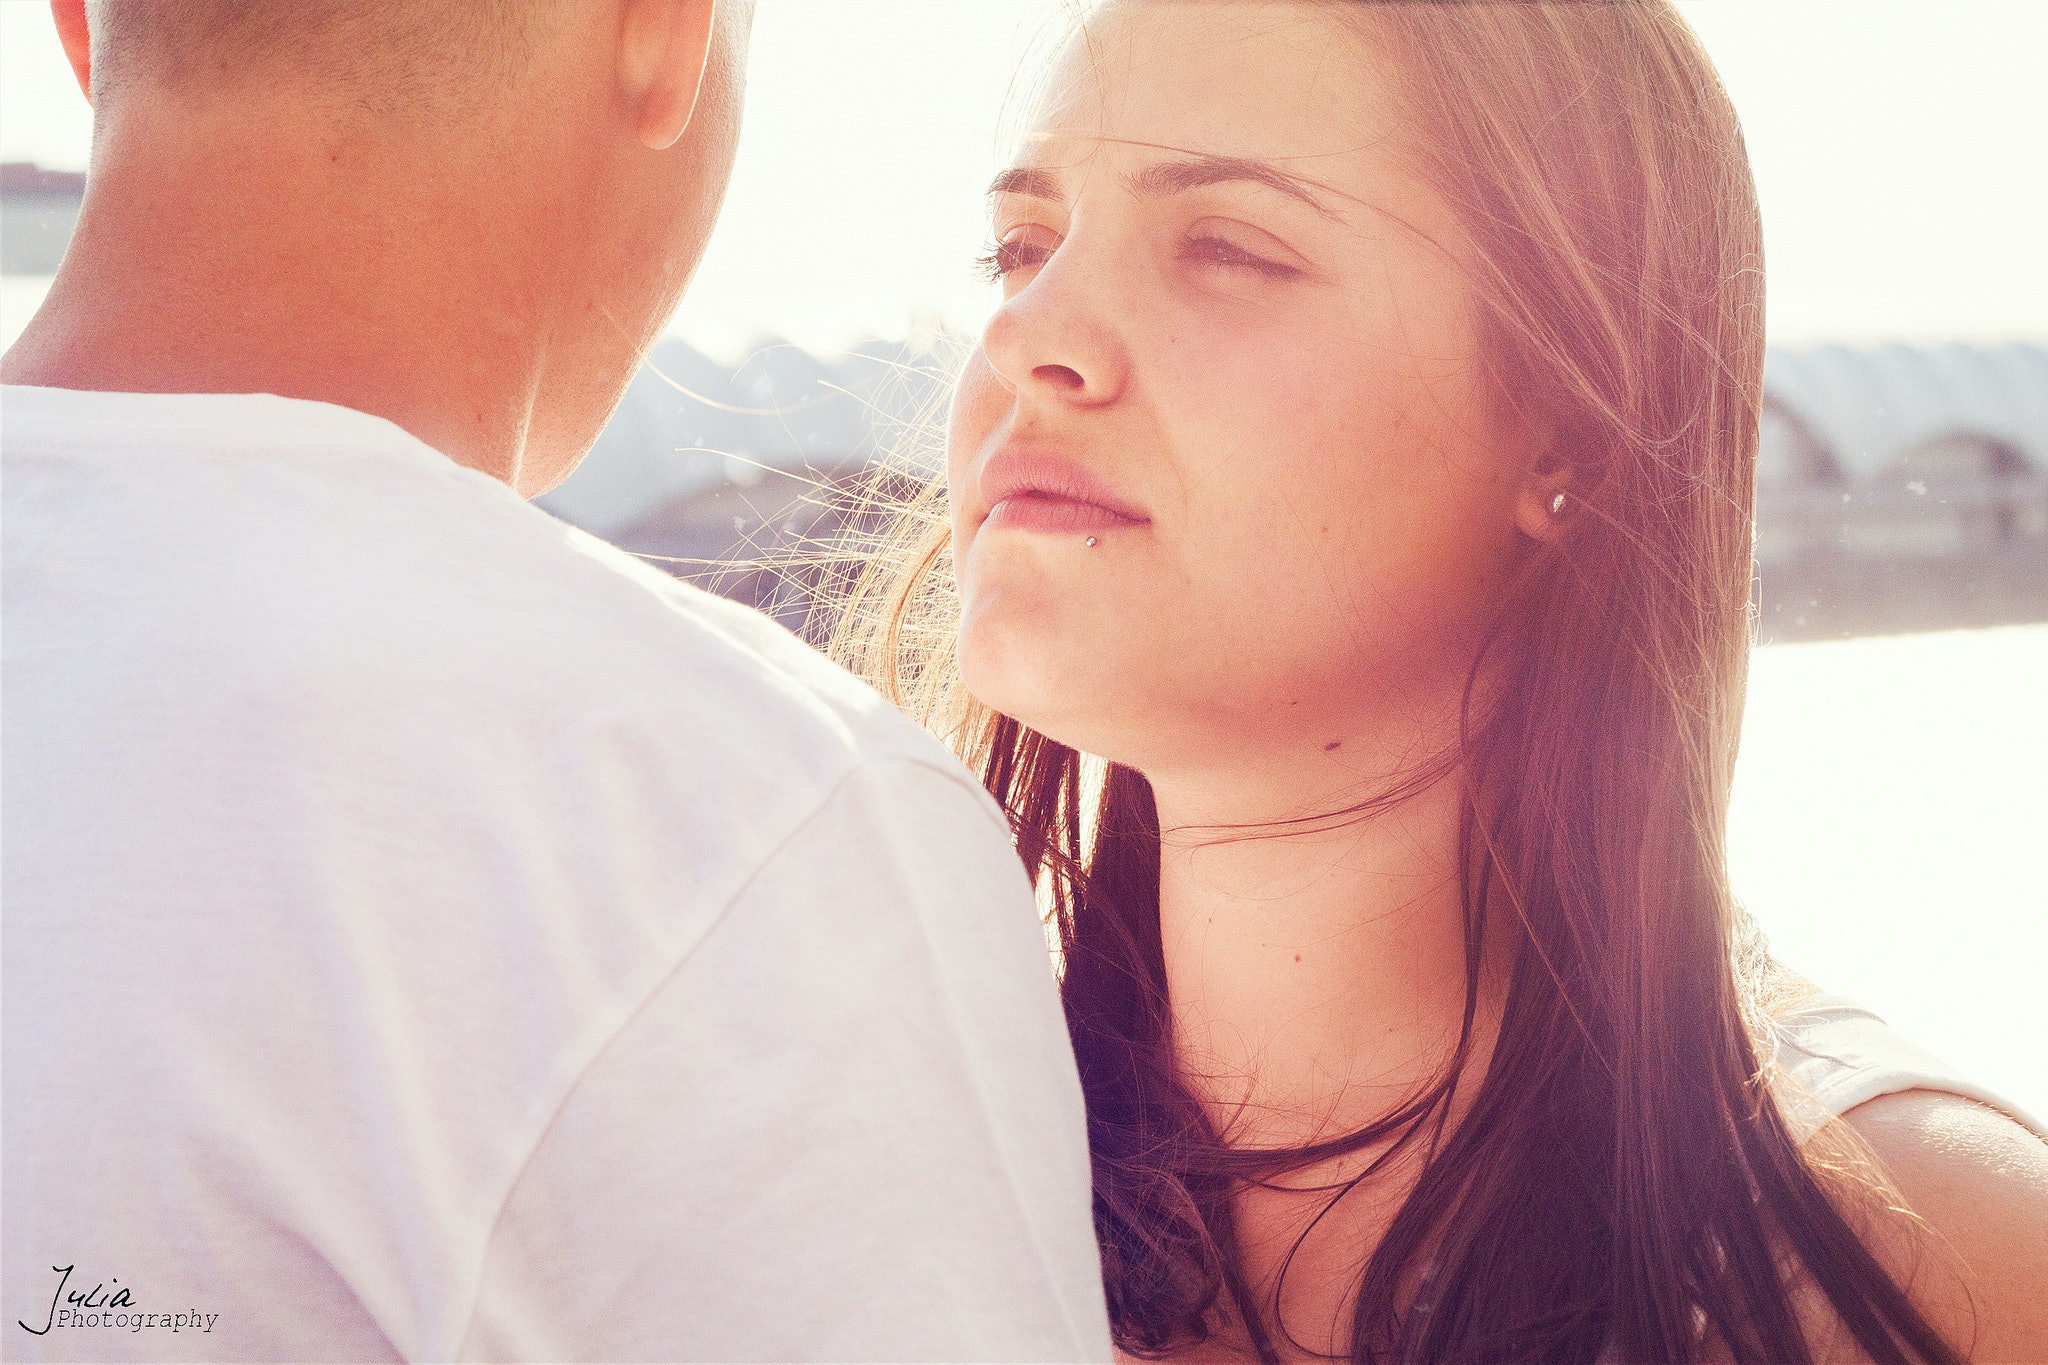 For which you should never apologize in a relationship